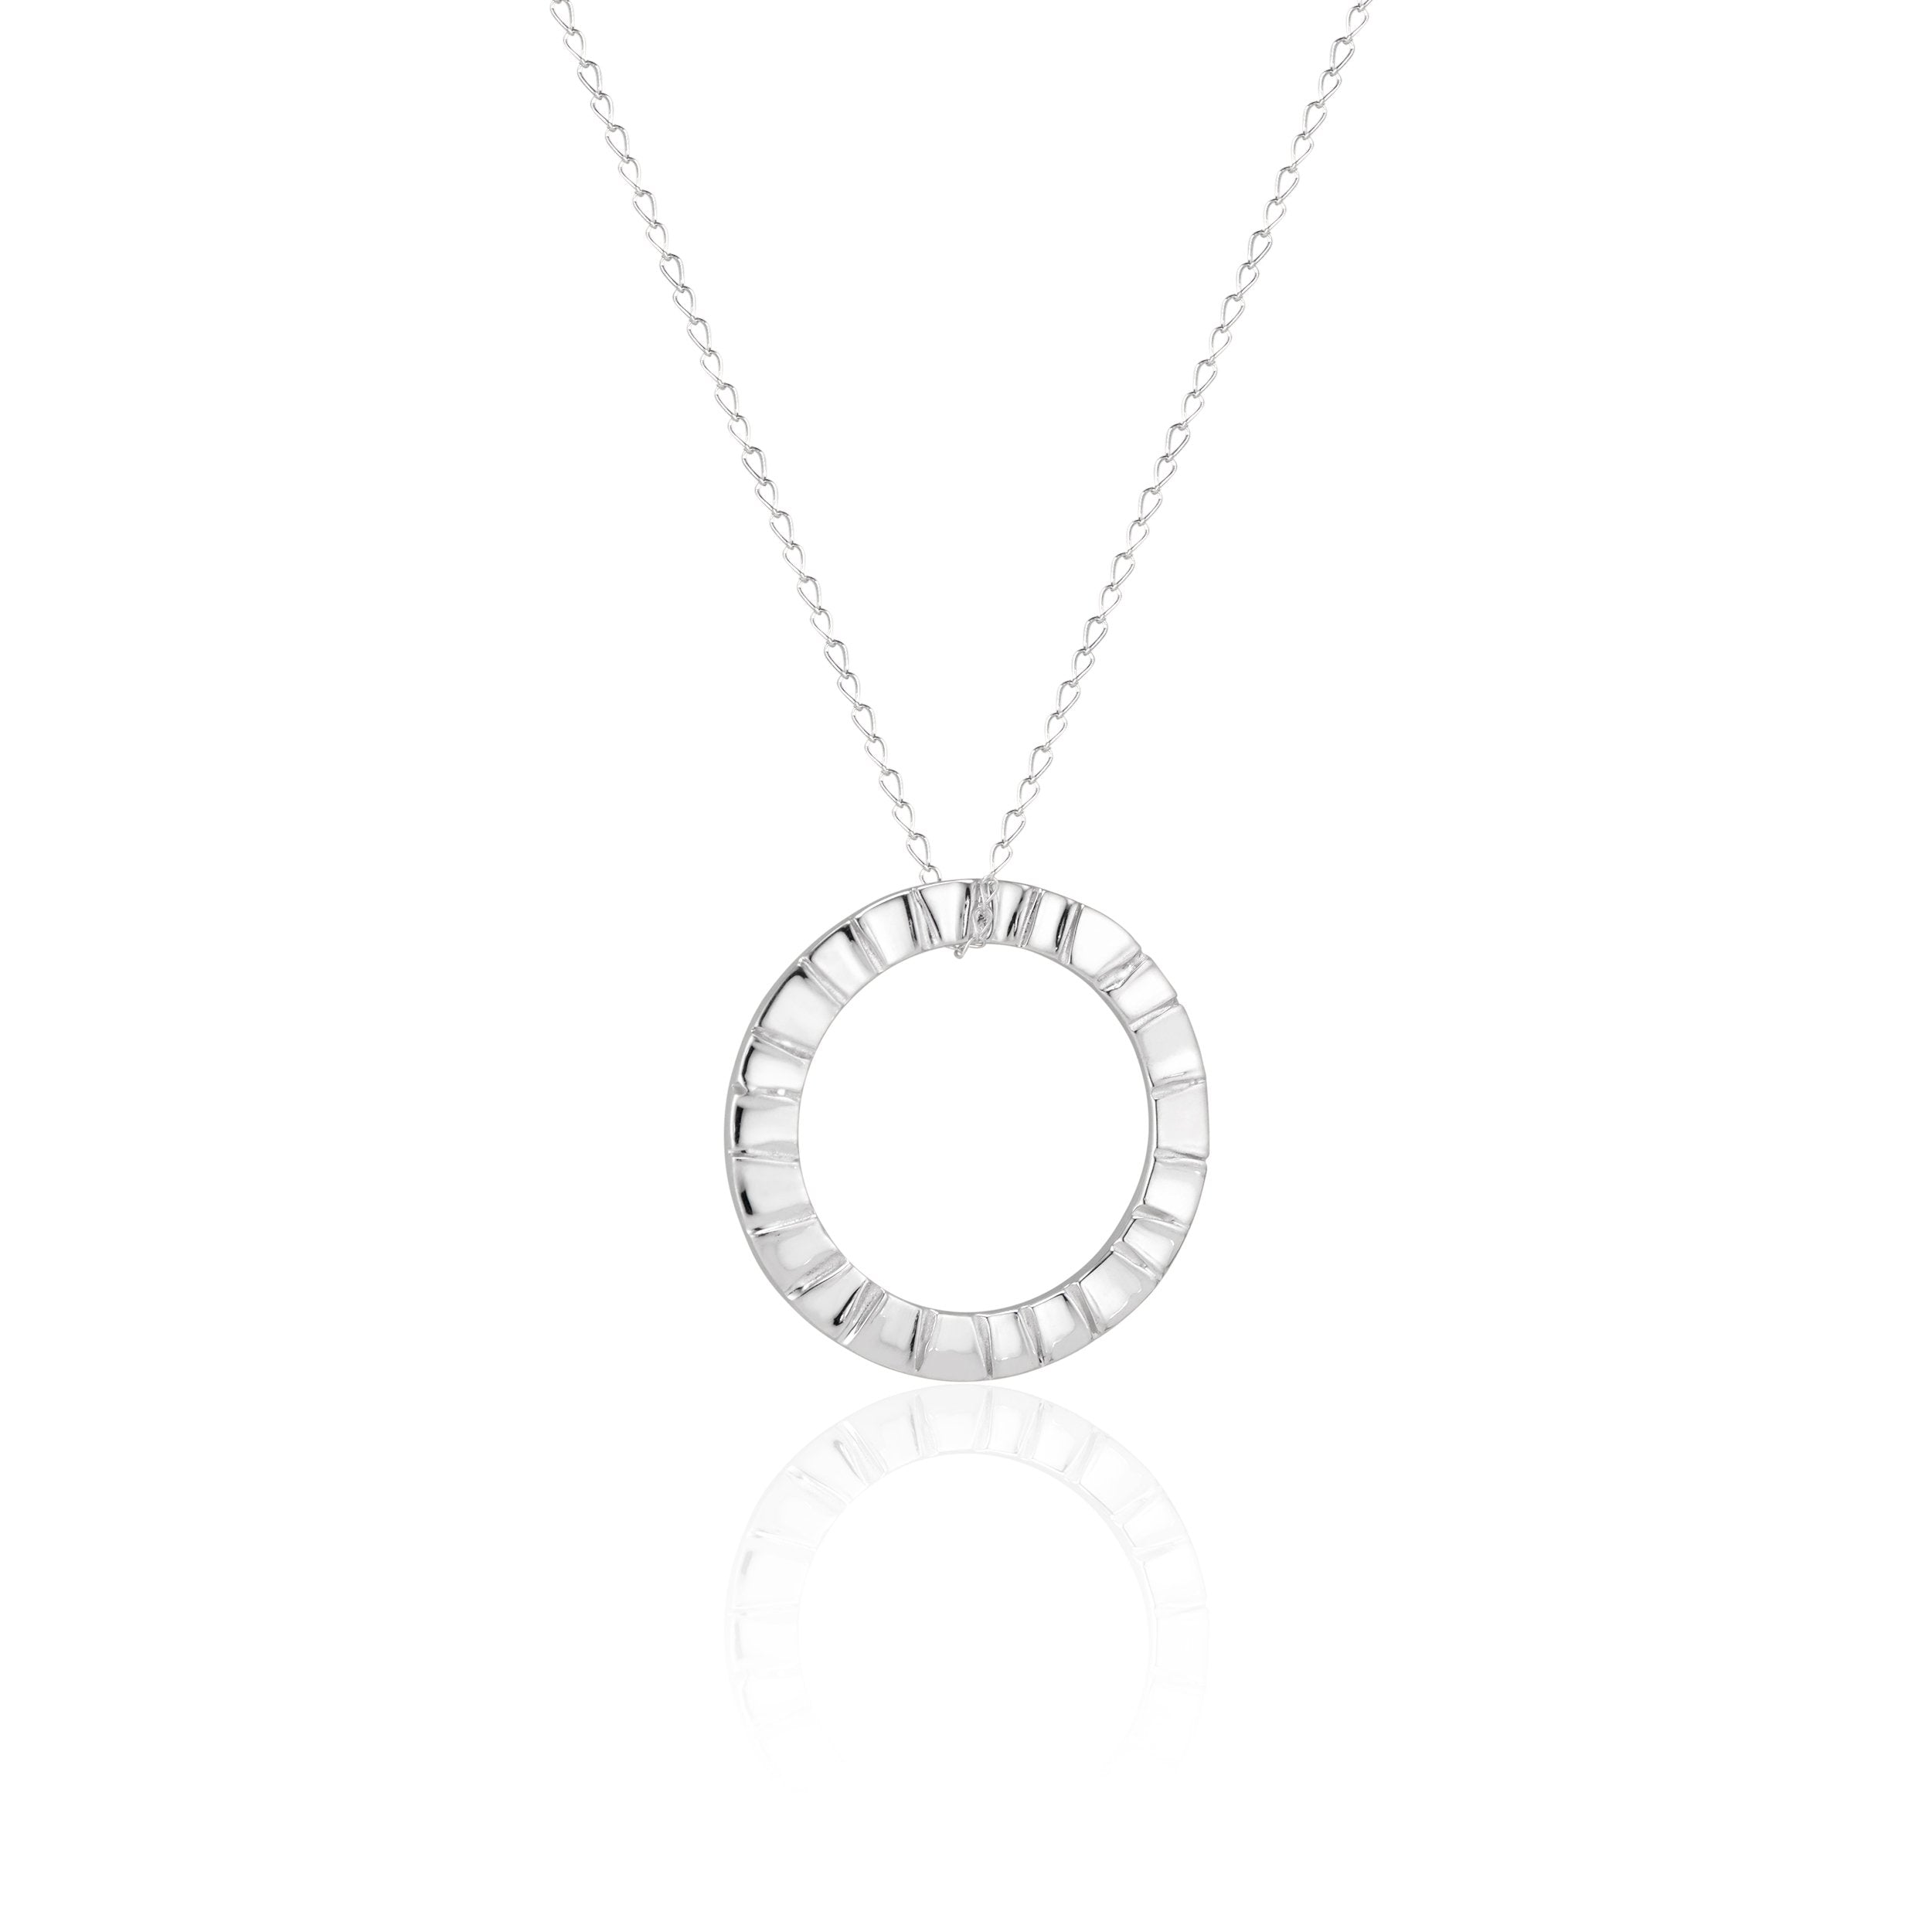 Natalie McMillan's Signature Piece and Best Seller! This delicate sterling silver necklace features a textured circular pendant on a delicate sterling chain. It is, as always, handcrafted and made to order! It is super comfortable for every day wear. Once you put it on, you'll never take it off!